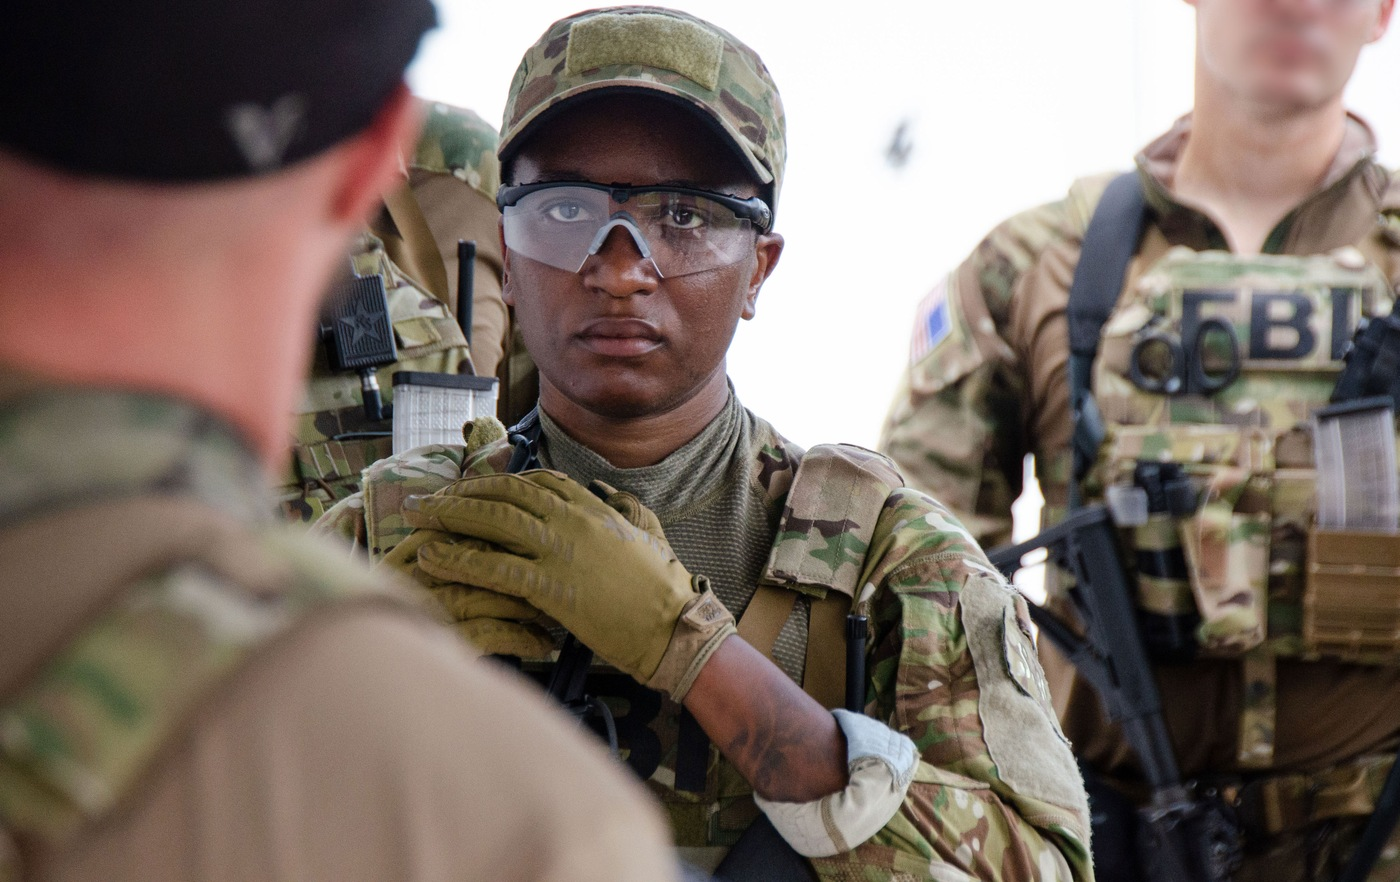 SWAT selectee Tai listens to instructors during SWAT New Operator Training School, or NOTS, in San Juan, Puerto Rico in May 2021.